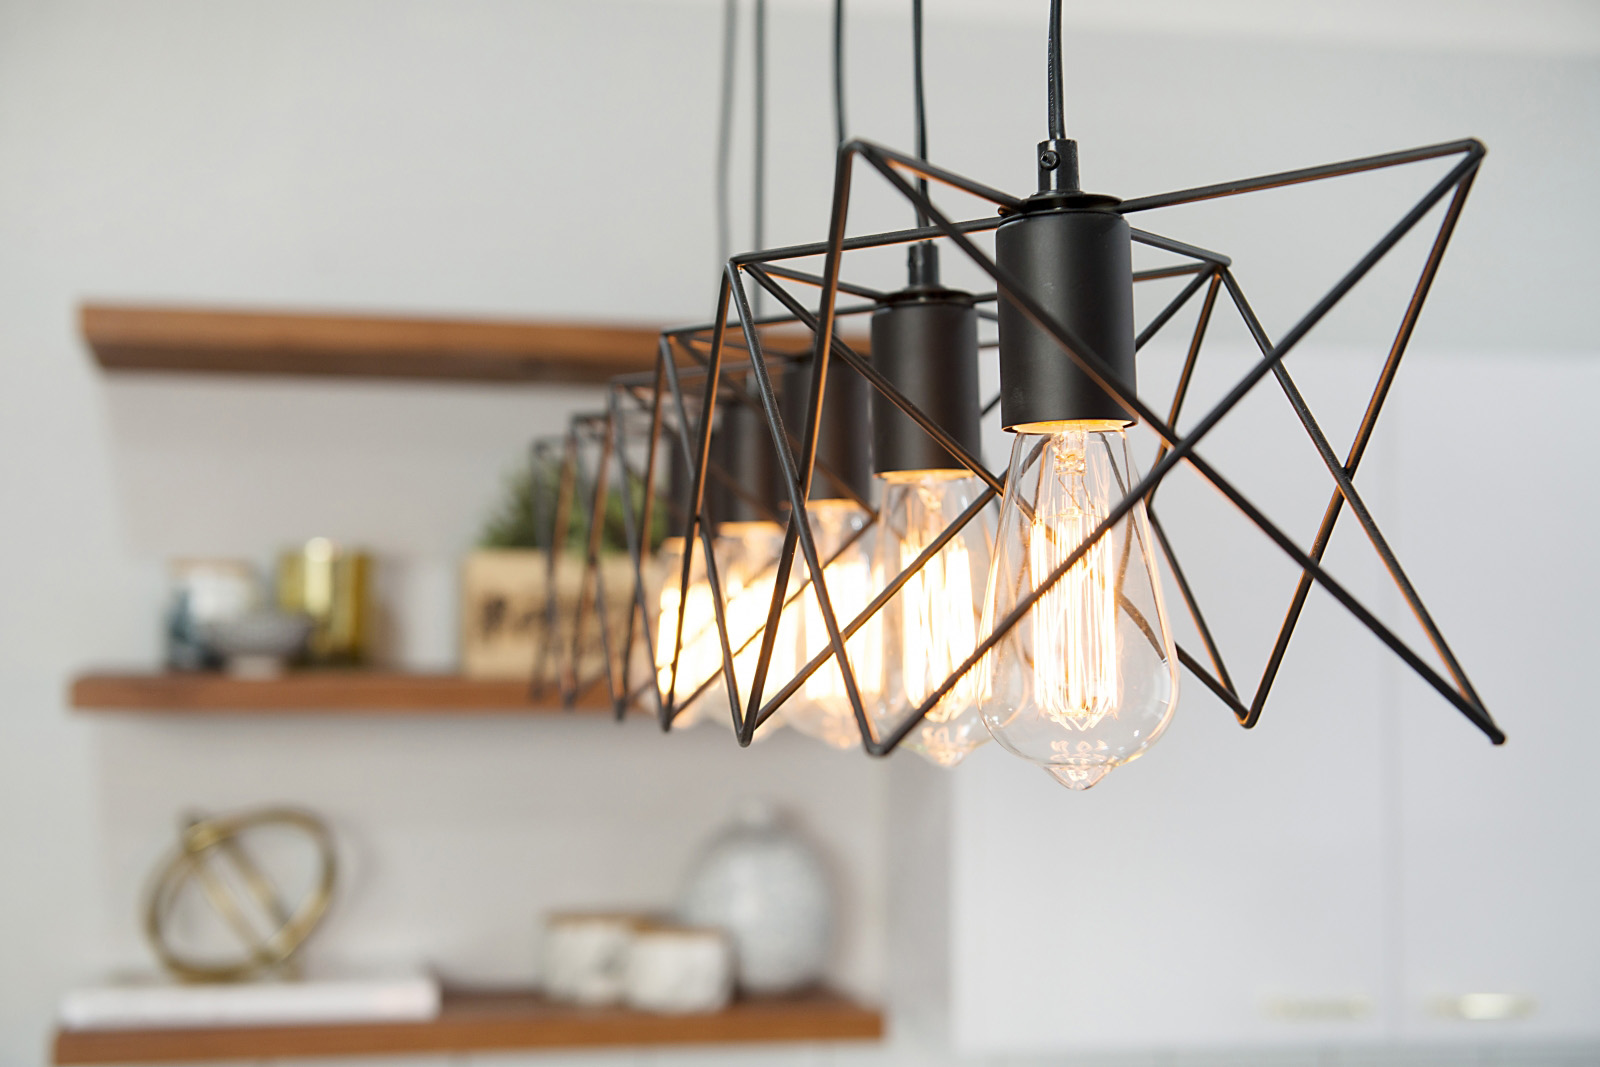 Cherie-Barber_Renovating-For-Profit_Colyton-Kitchen-lights_After